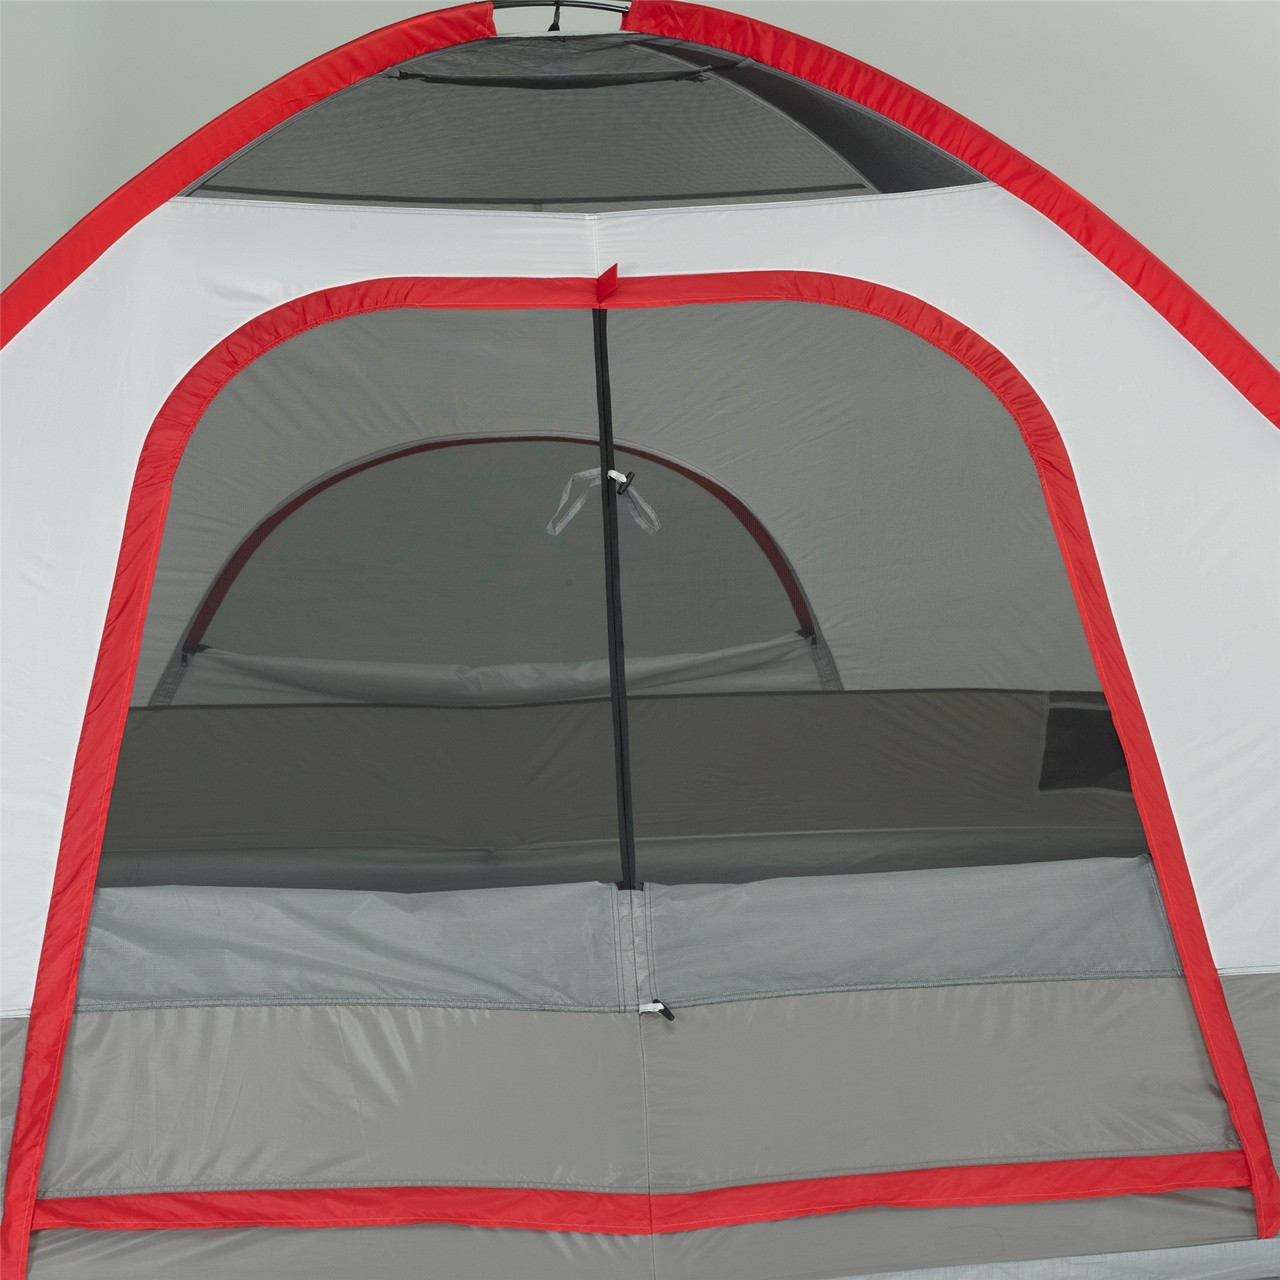 Close up view of the main door on the Wenzel Pine Ridge 5 tent with the rain fly off and the main and back screen windows rolled open